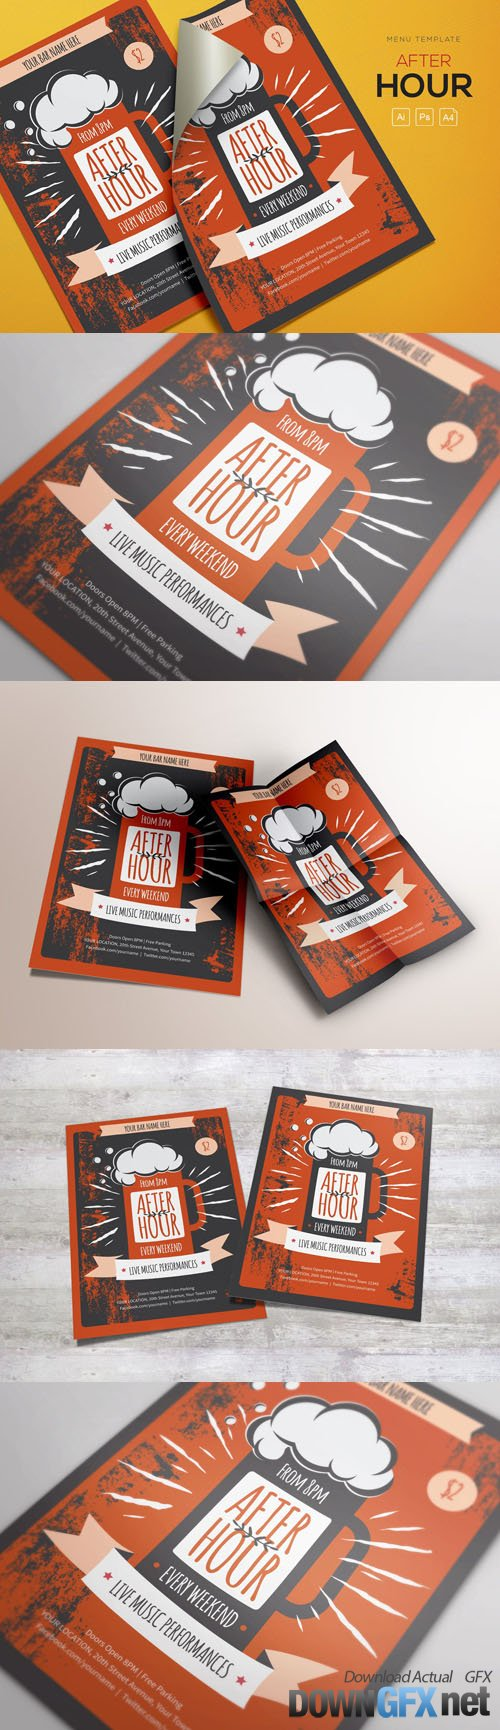 After Hour Flyers Template